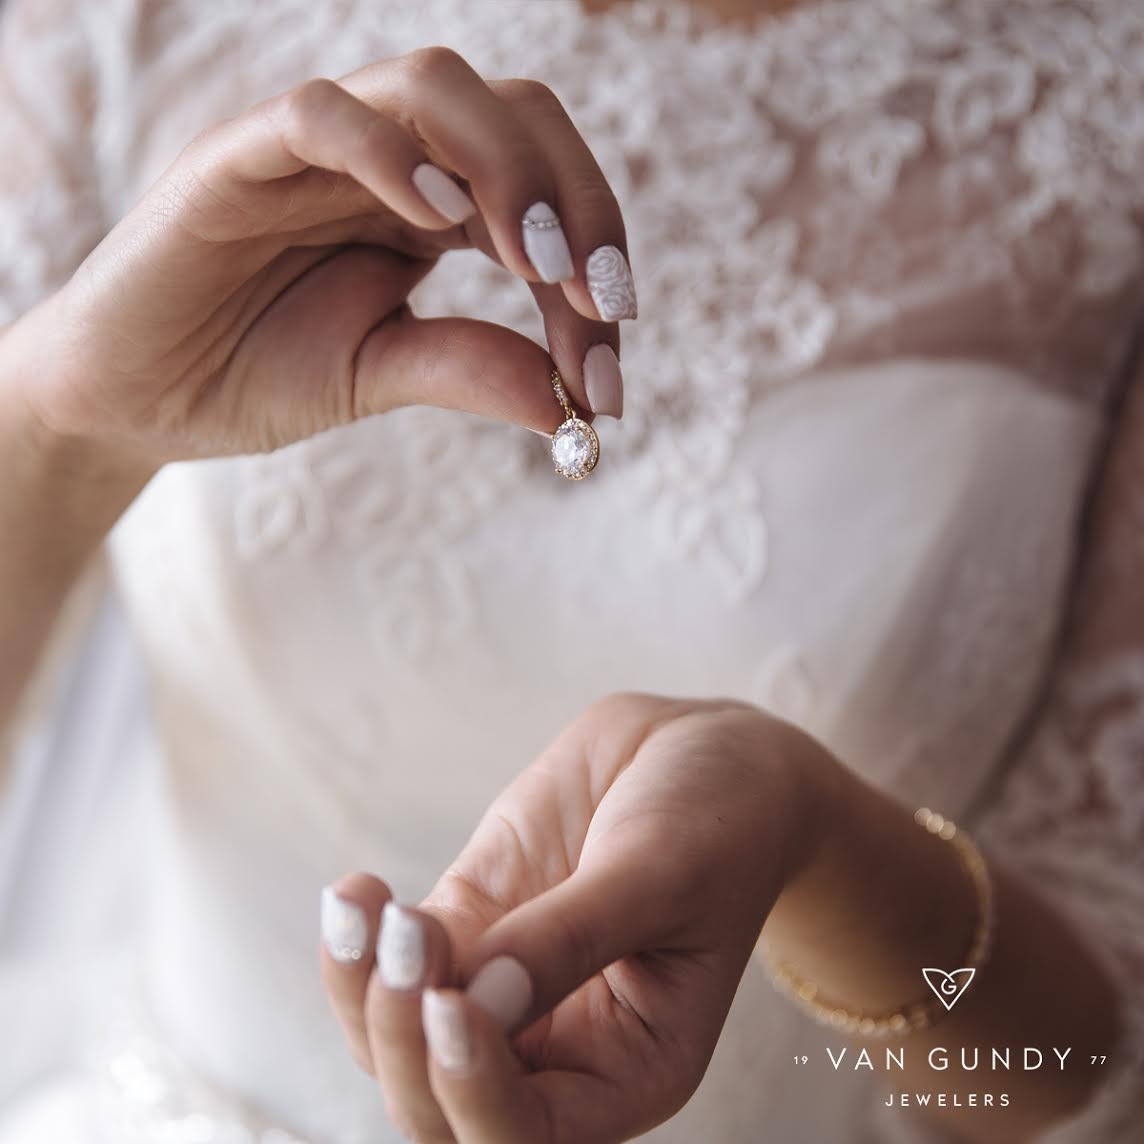 Wedding Day Jewelry Dos & Don'ts